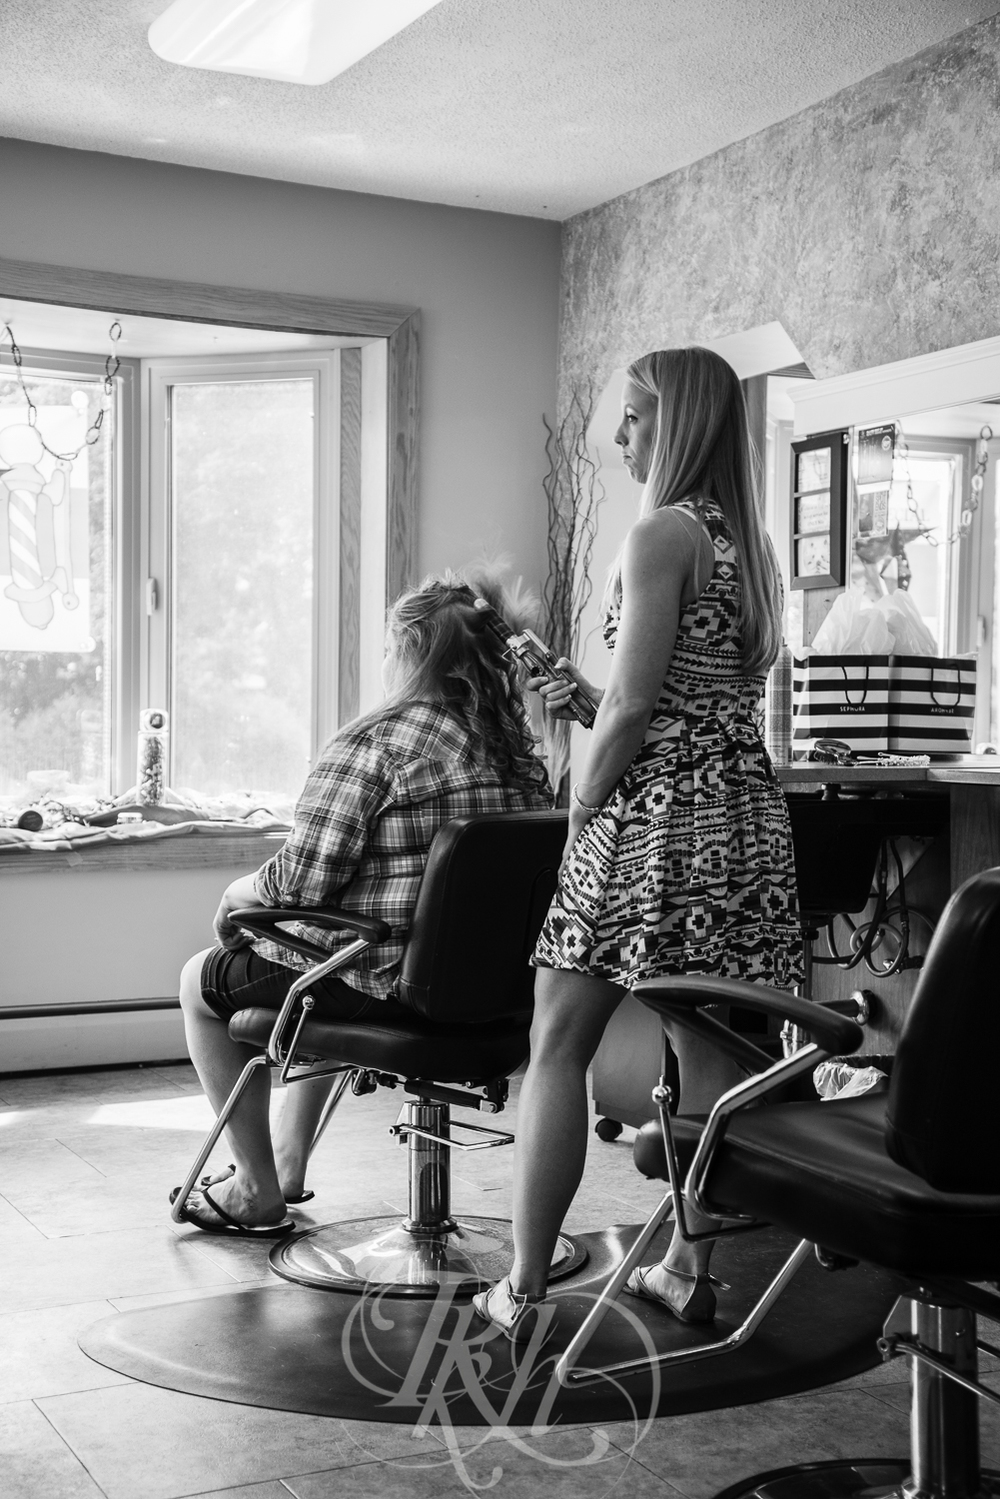 Dani & Chris - Minnesota Wedding Photographer - RKH Images - Getting Ready-6.jpg